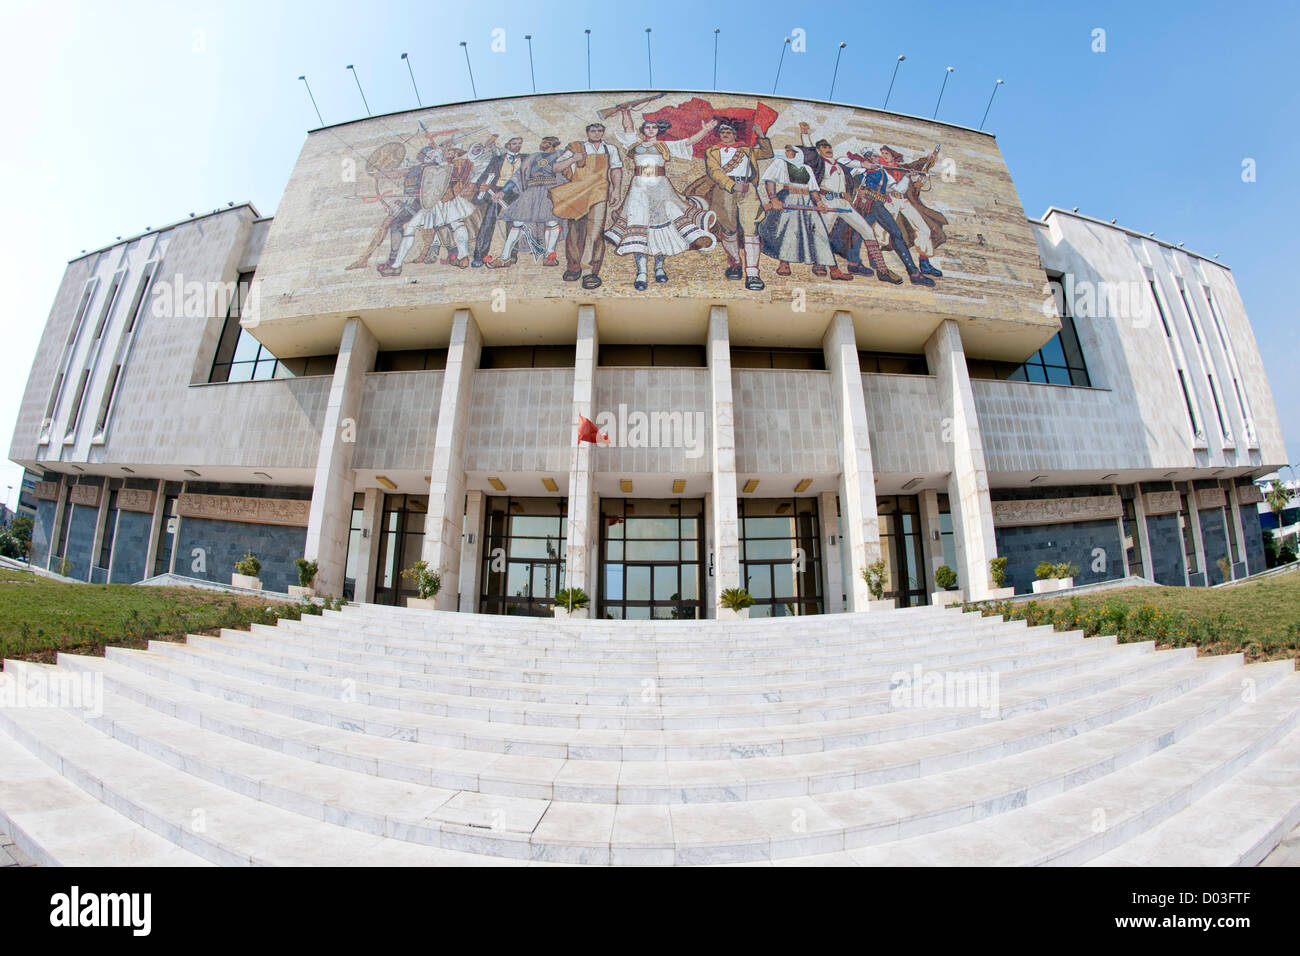 The National Historical Museum in Tirana, the capital of Albania. - Stock Image